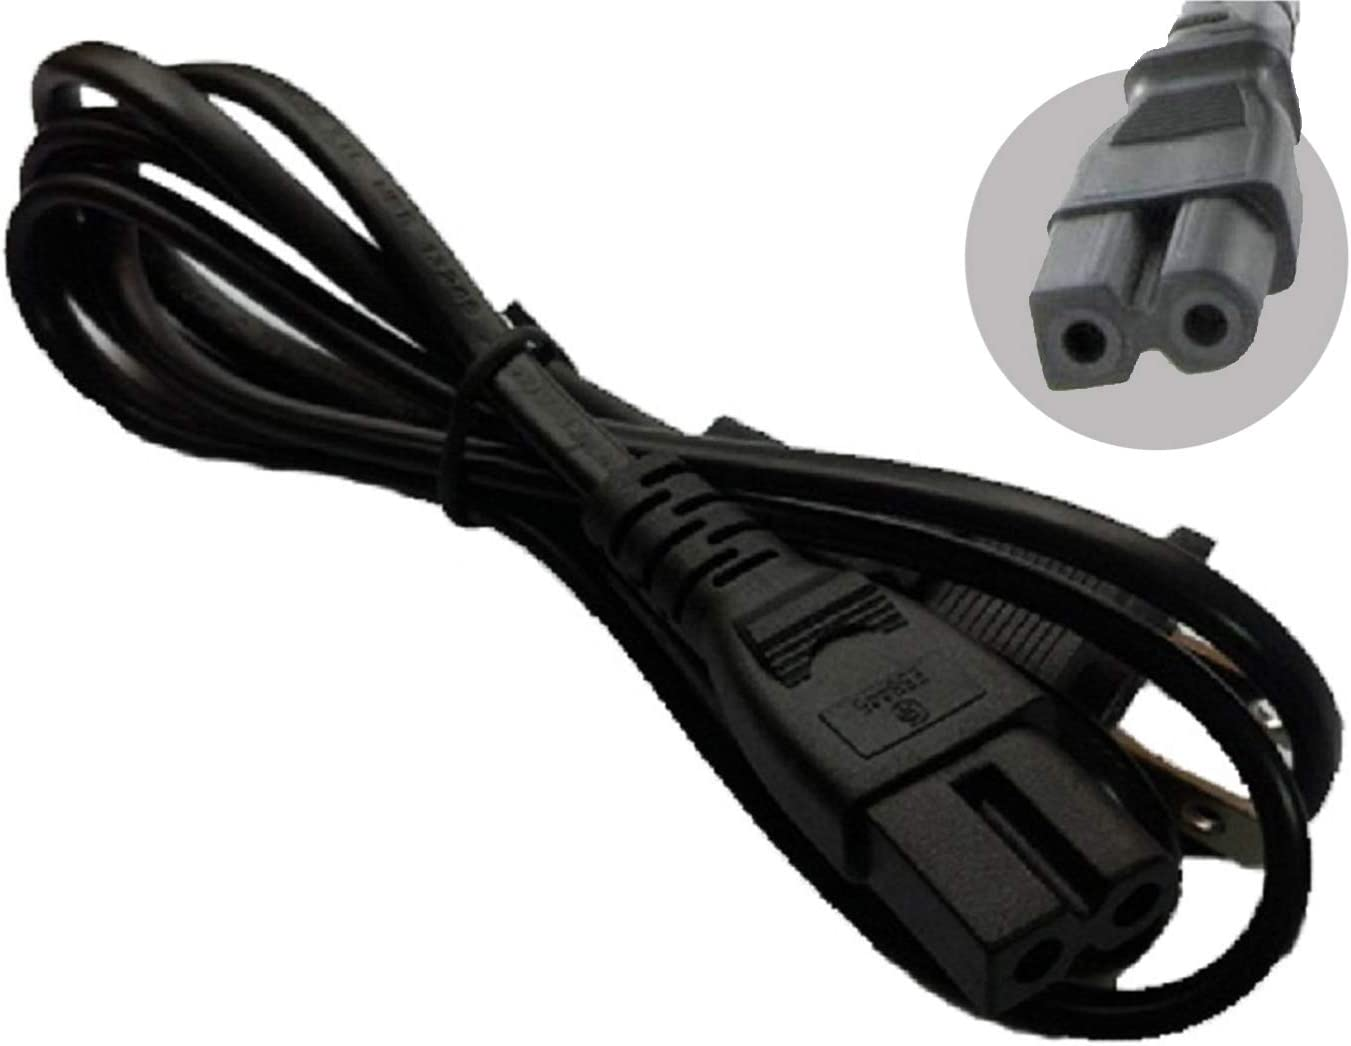 Elna UK Mains 2 PIn Power Lead Cable Cord For Elna Sewing Machines